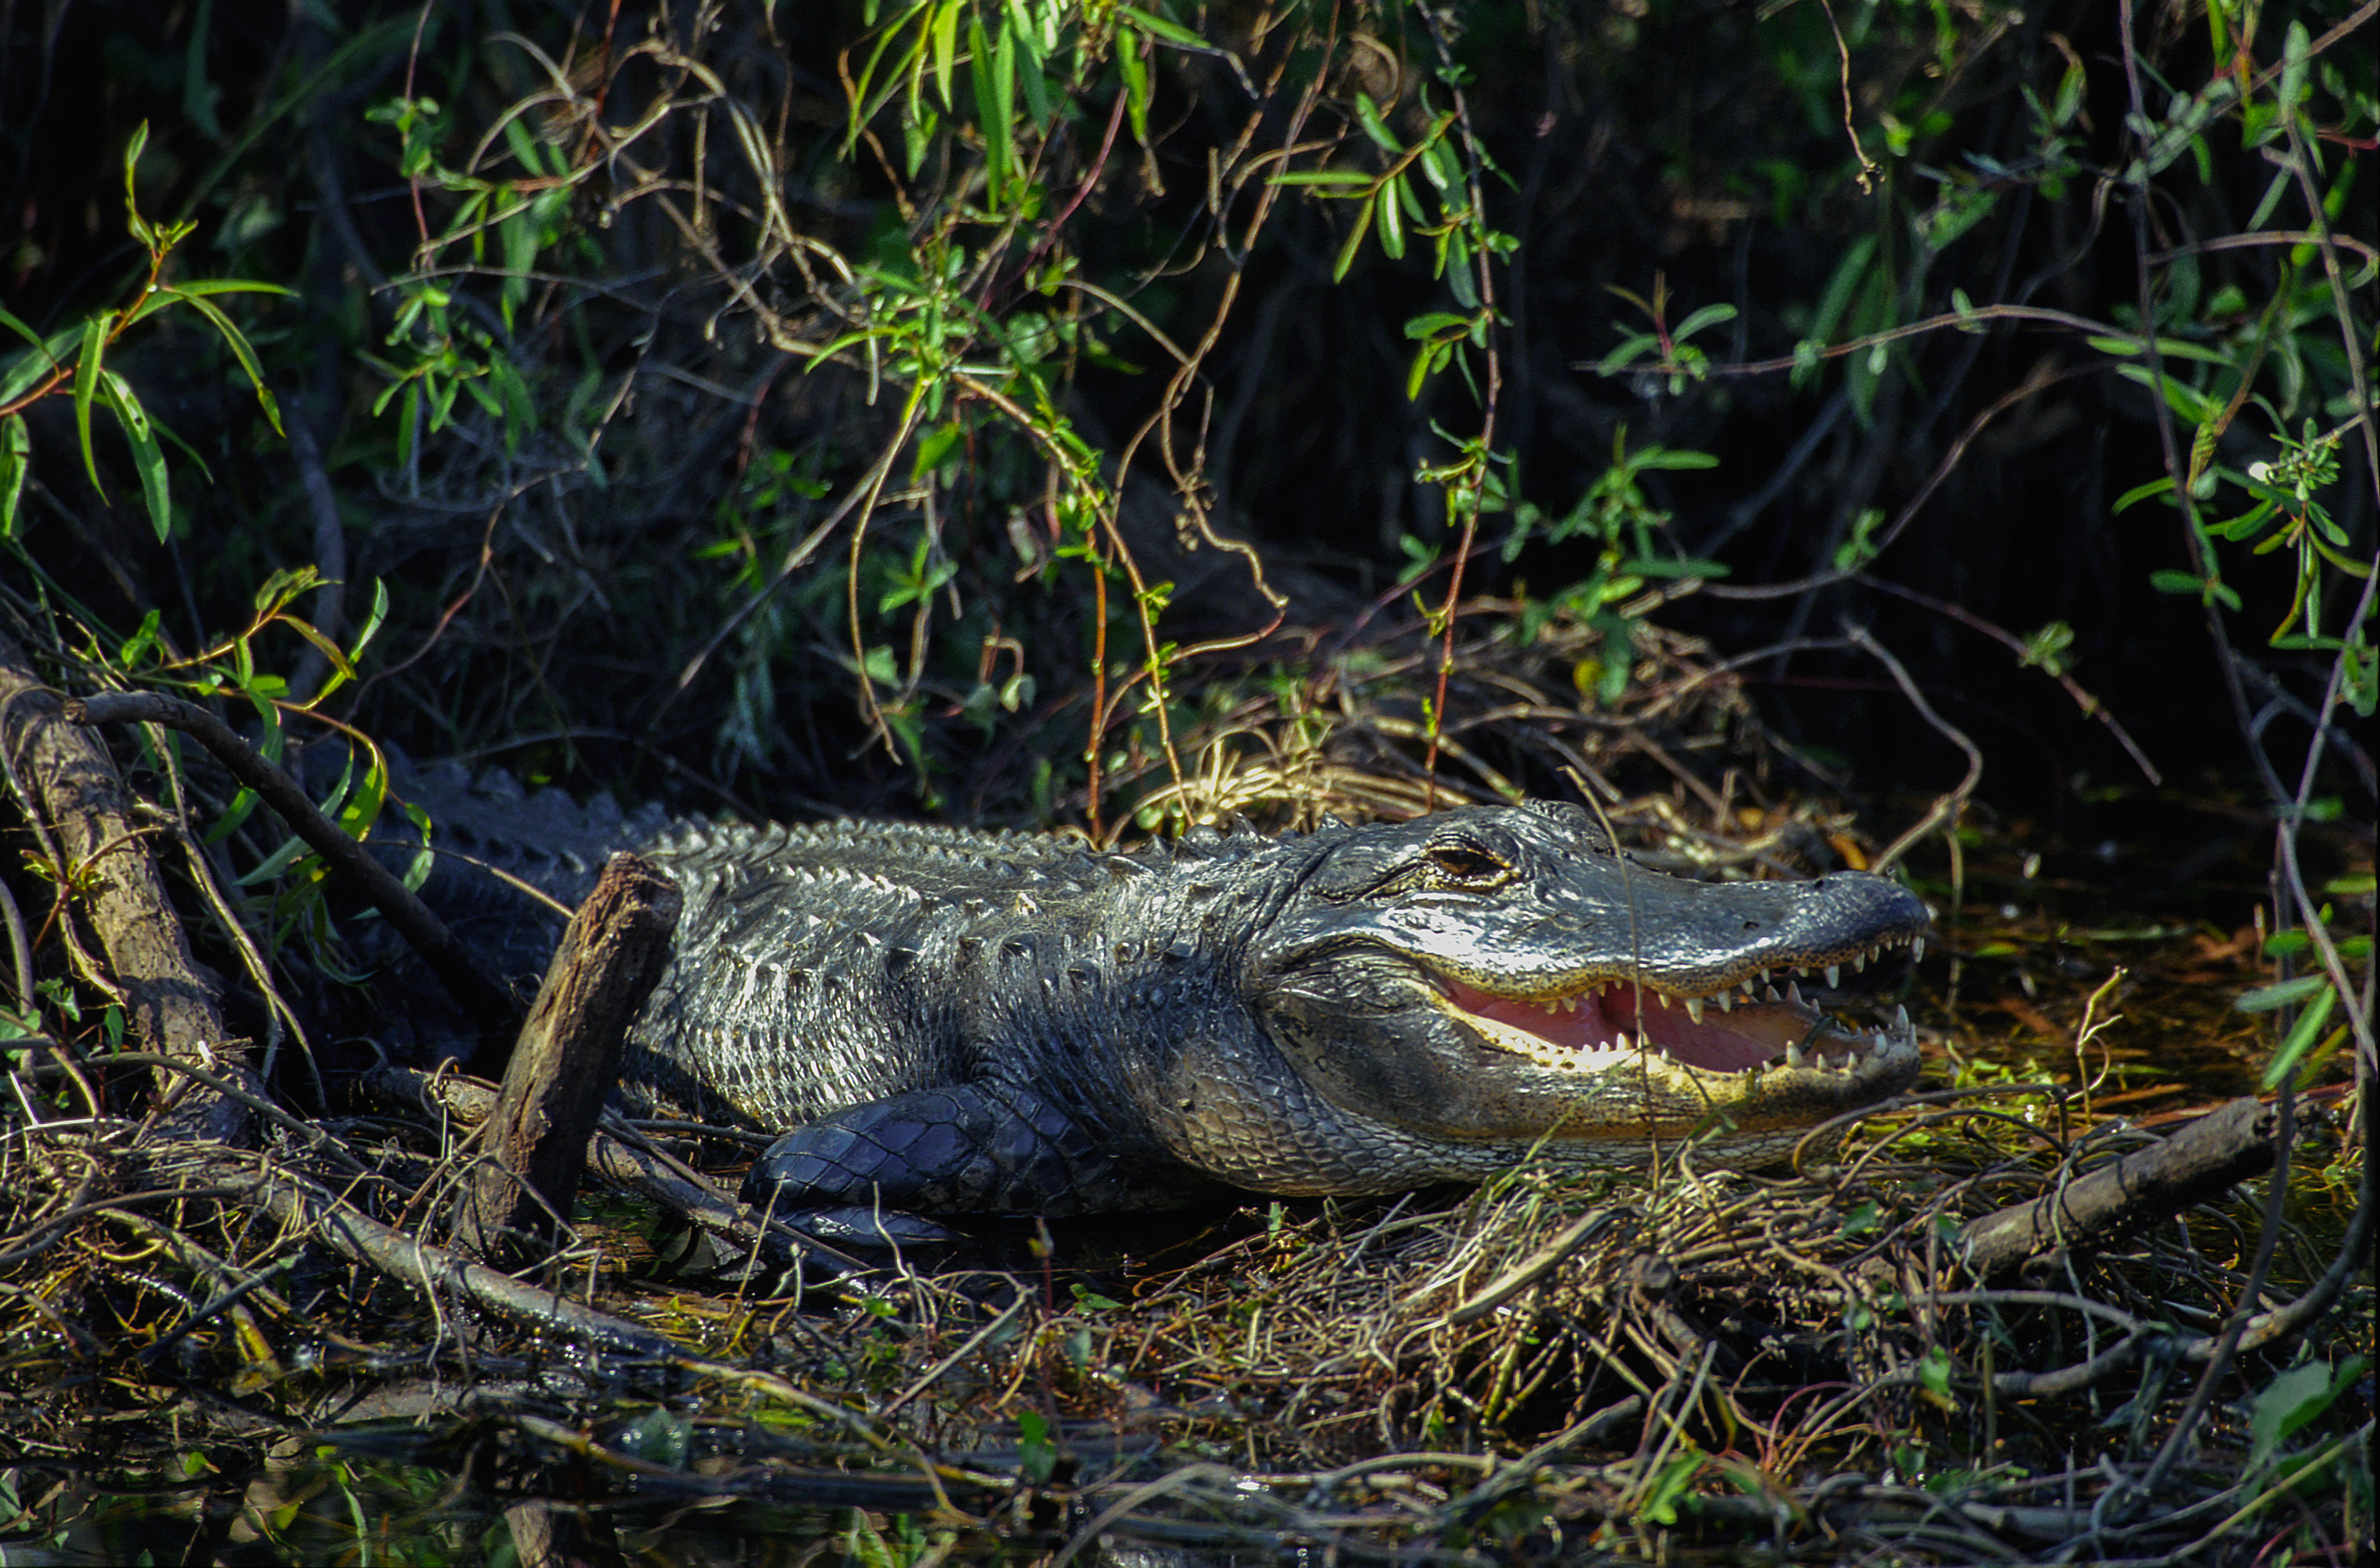 Alligator in the everglades clipart clip art freeuse File:Everglades31(js)-American alligator.jpg - Wikimedia Commons clip art freeuse